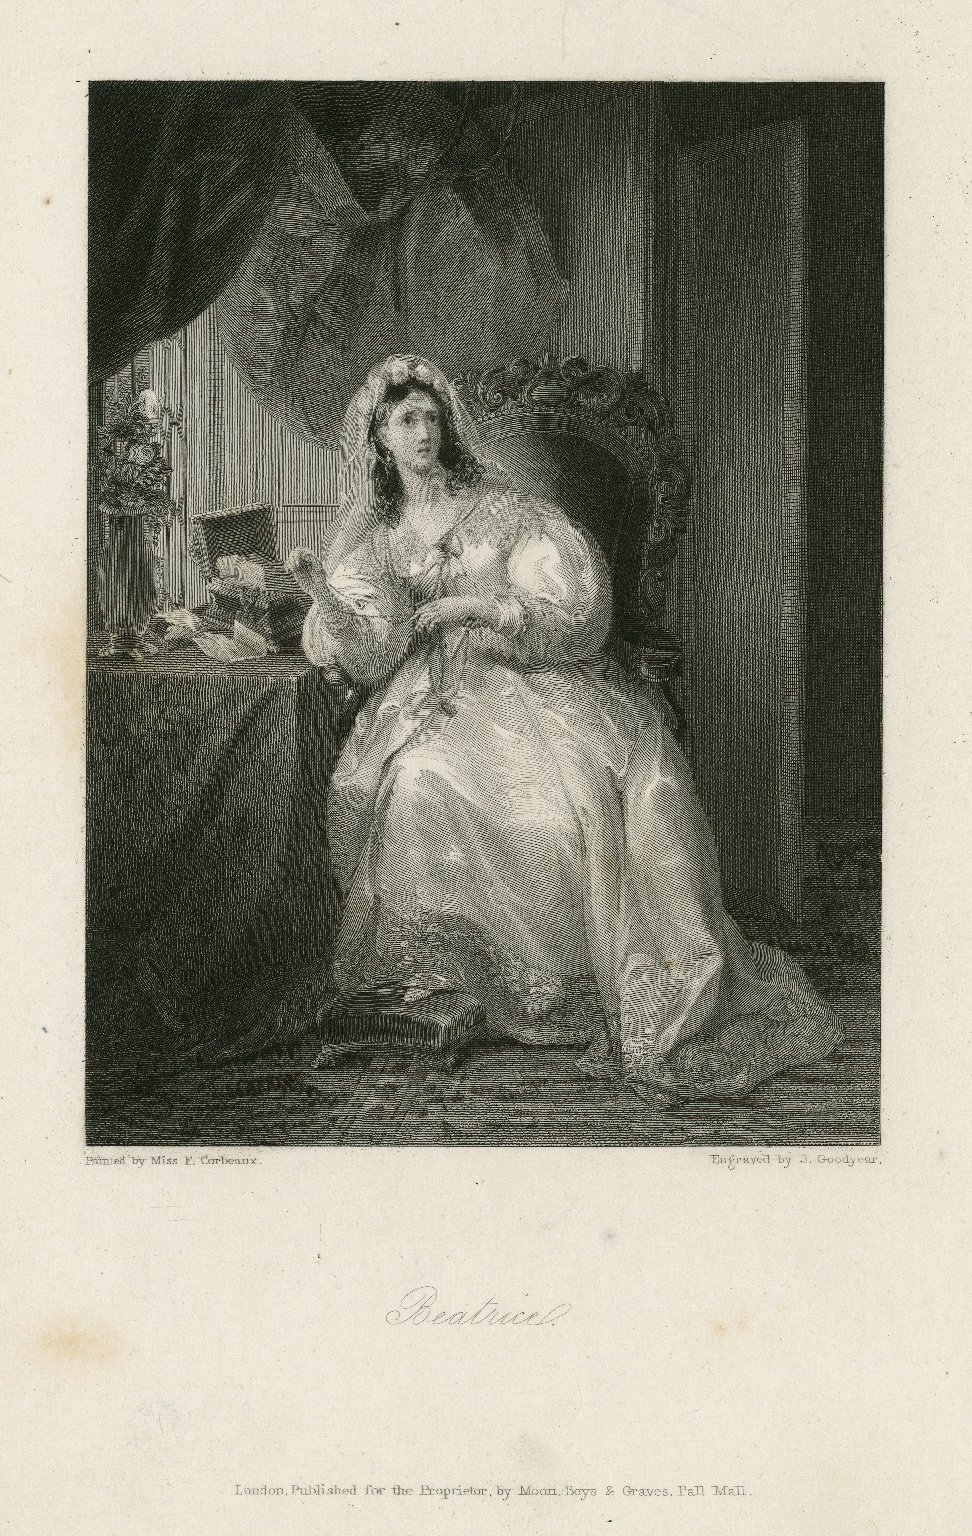 Beatrice [character in Much ado about nothing] [graphic] / painted by Miss F. Corbeaux ; engraved by J. Goodyear.